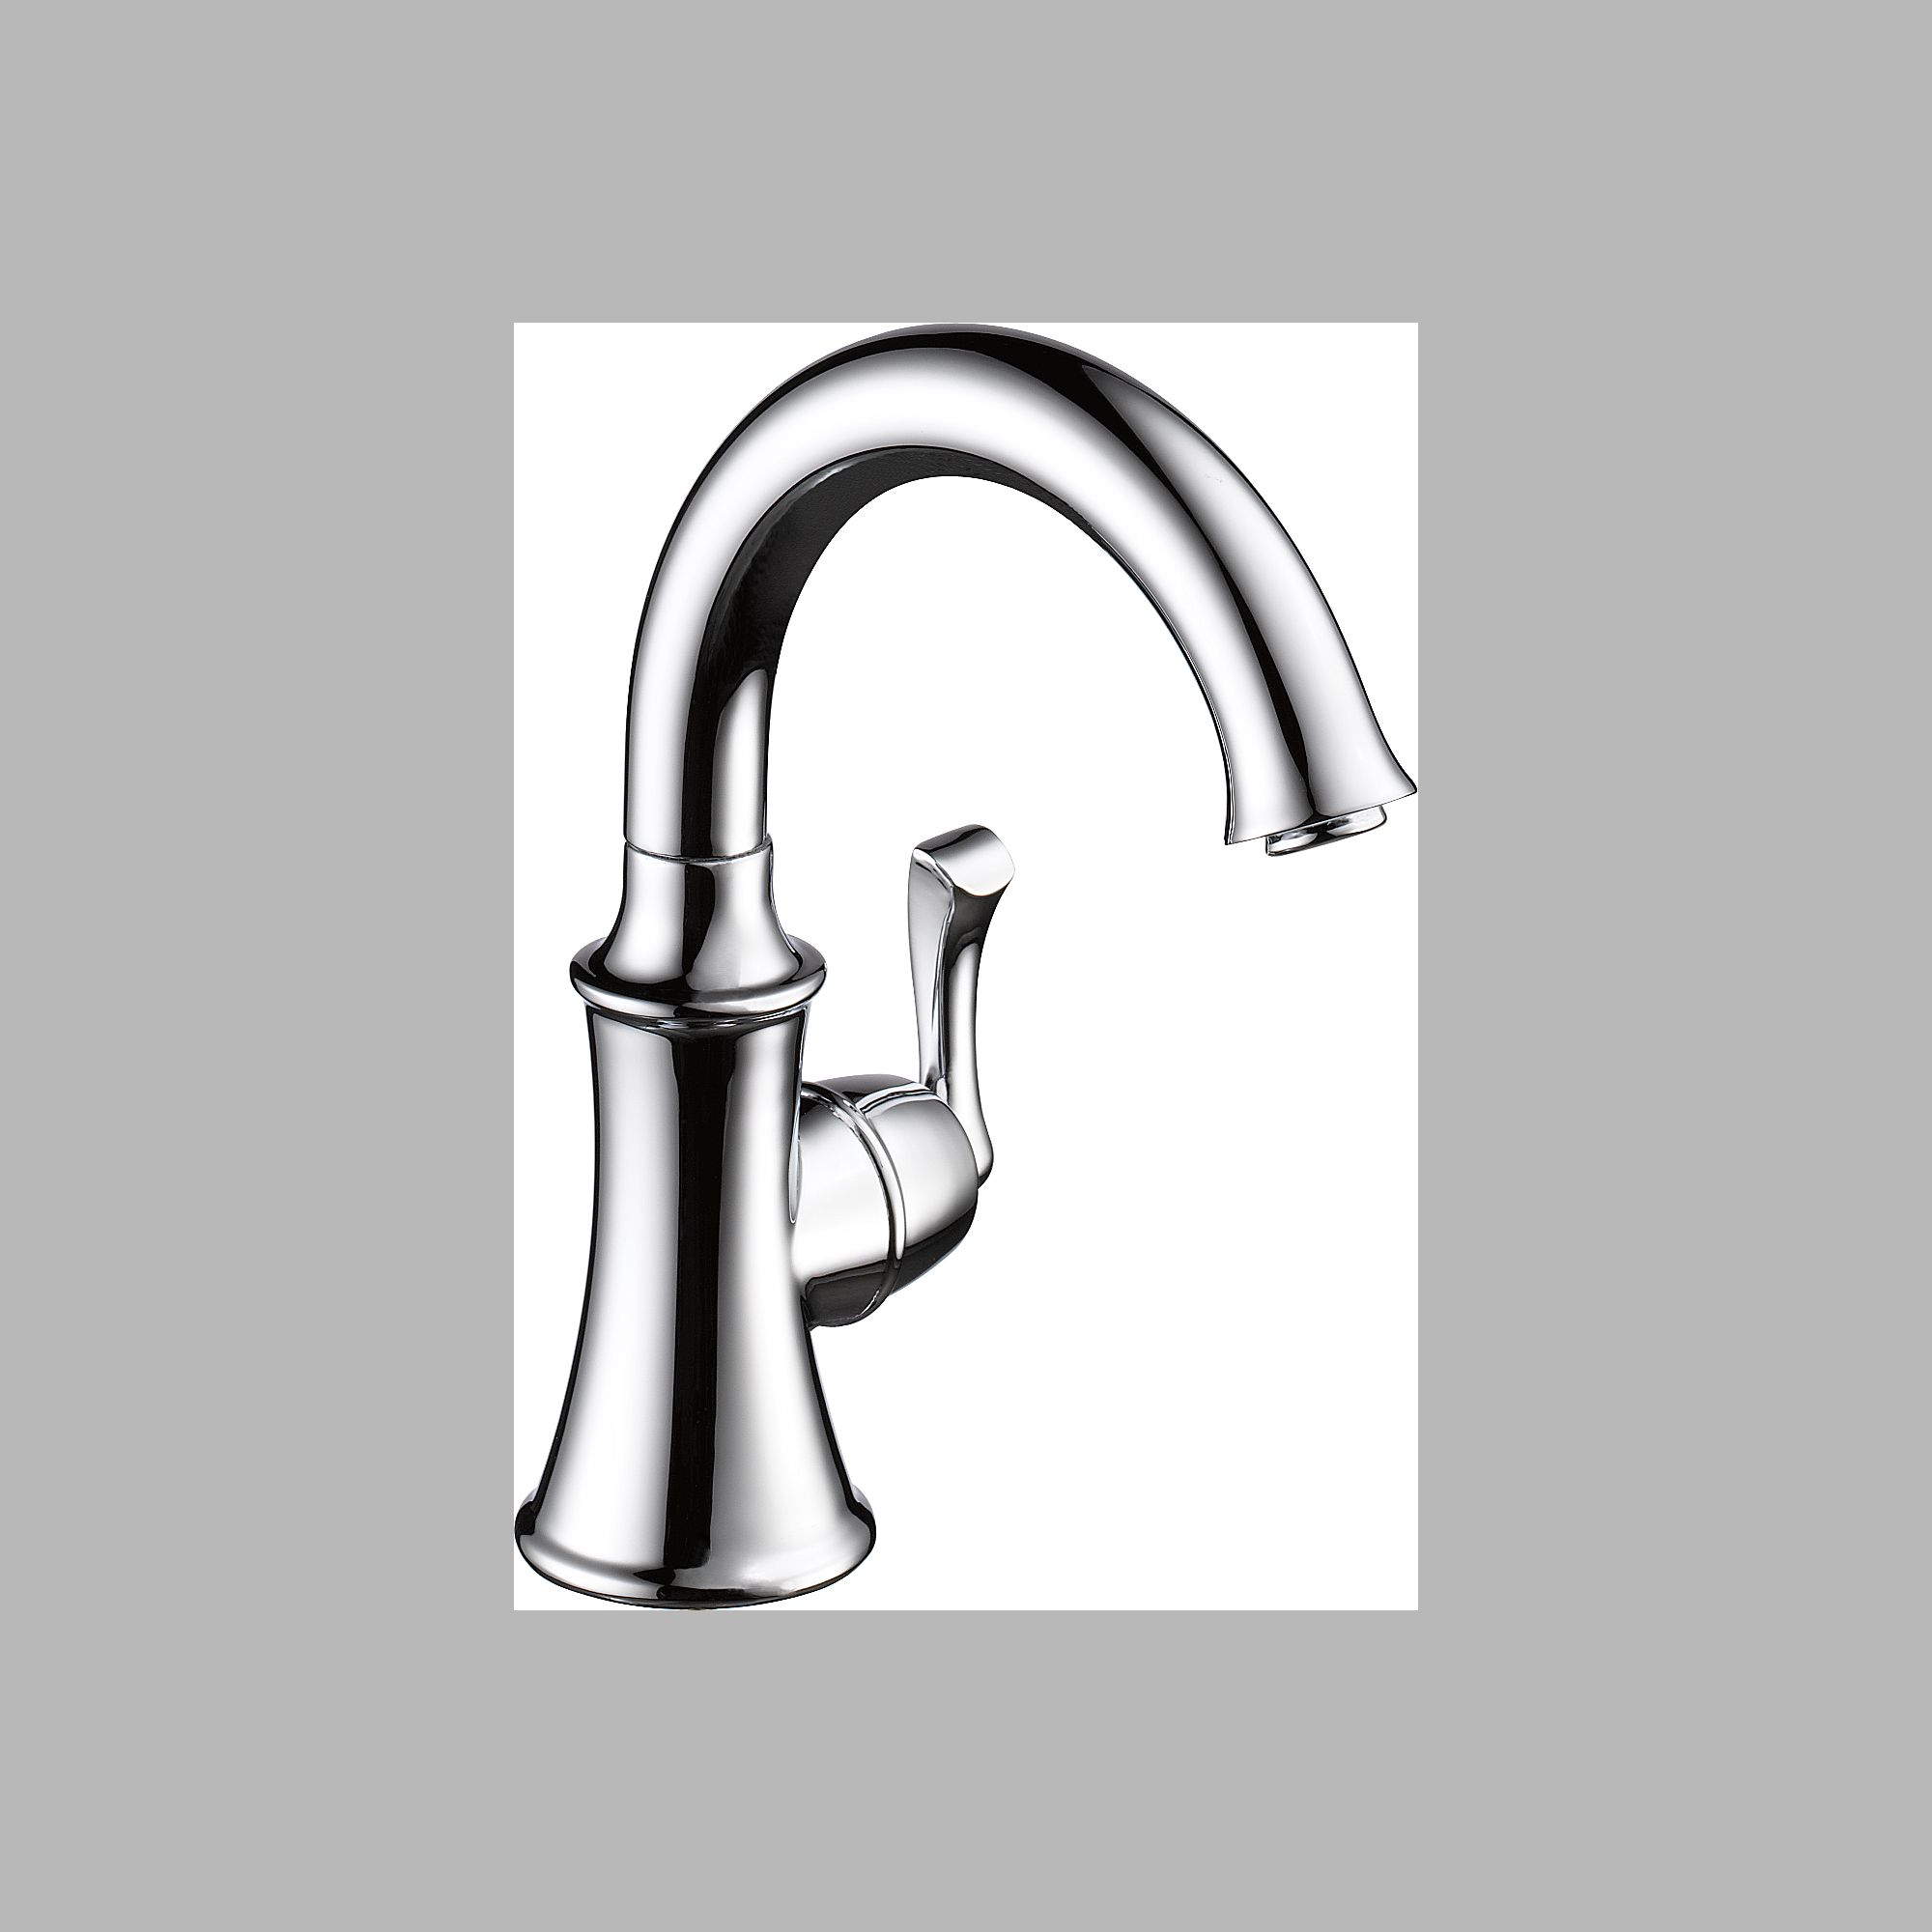 Pacific Sales Kitchen Faucets 28 Images Pacific Bay Single Handle Kitchen Faucet 24 Inch